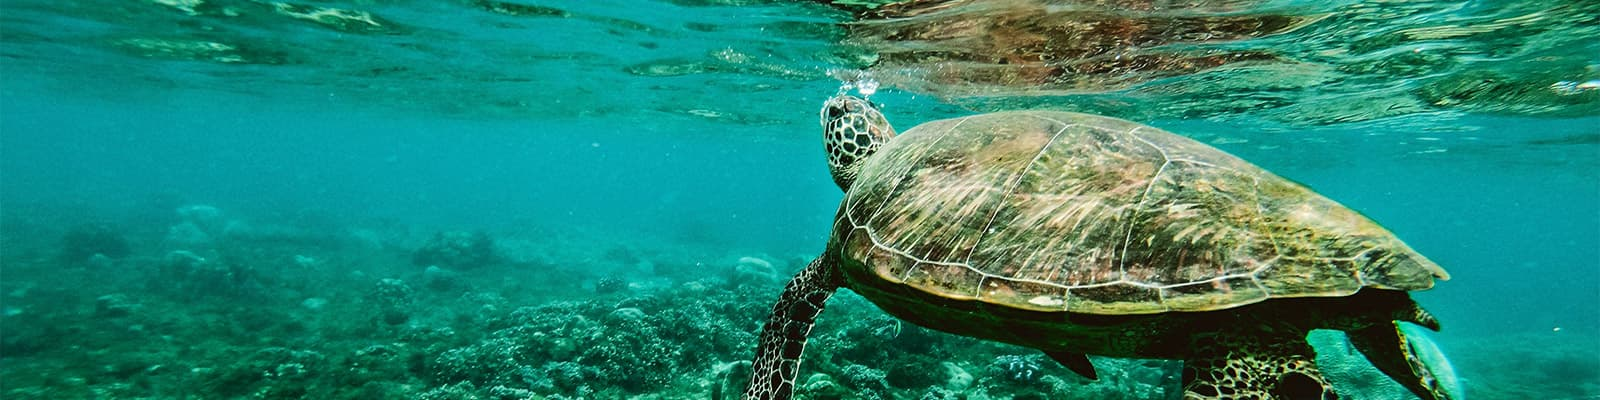 A turtle swims over a reef